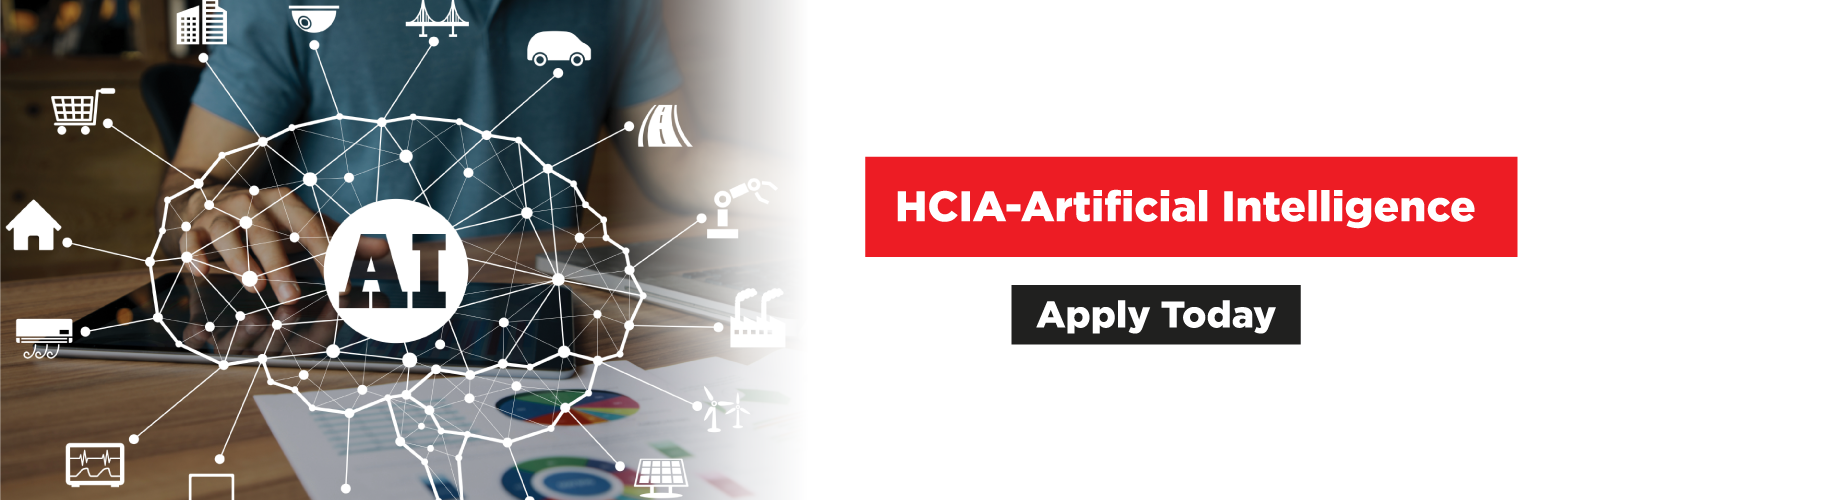 banner-HCIA-Artificial-Intelligence